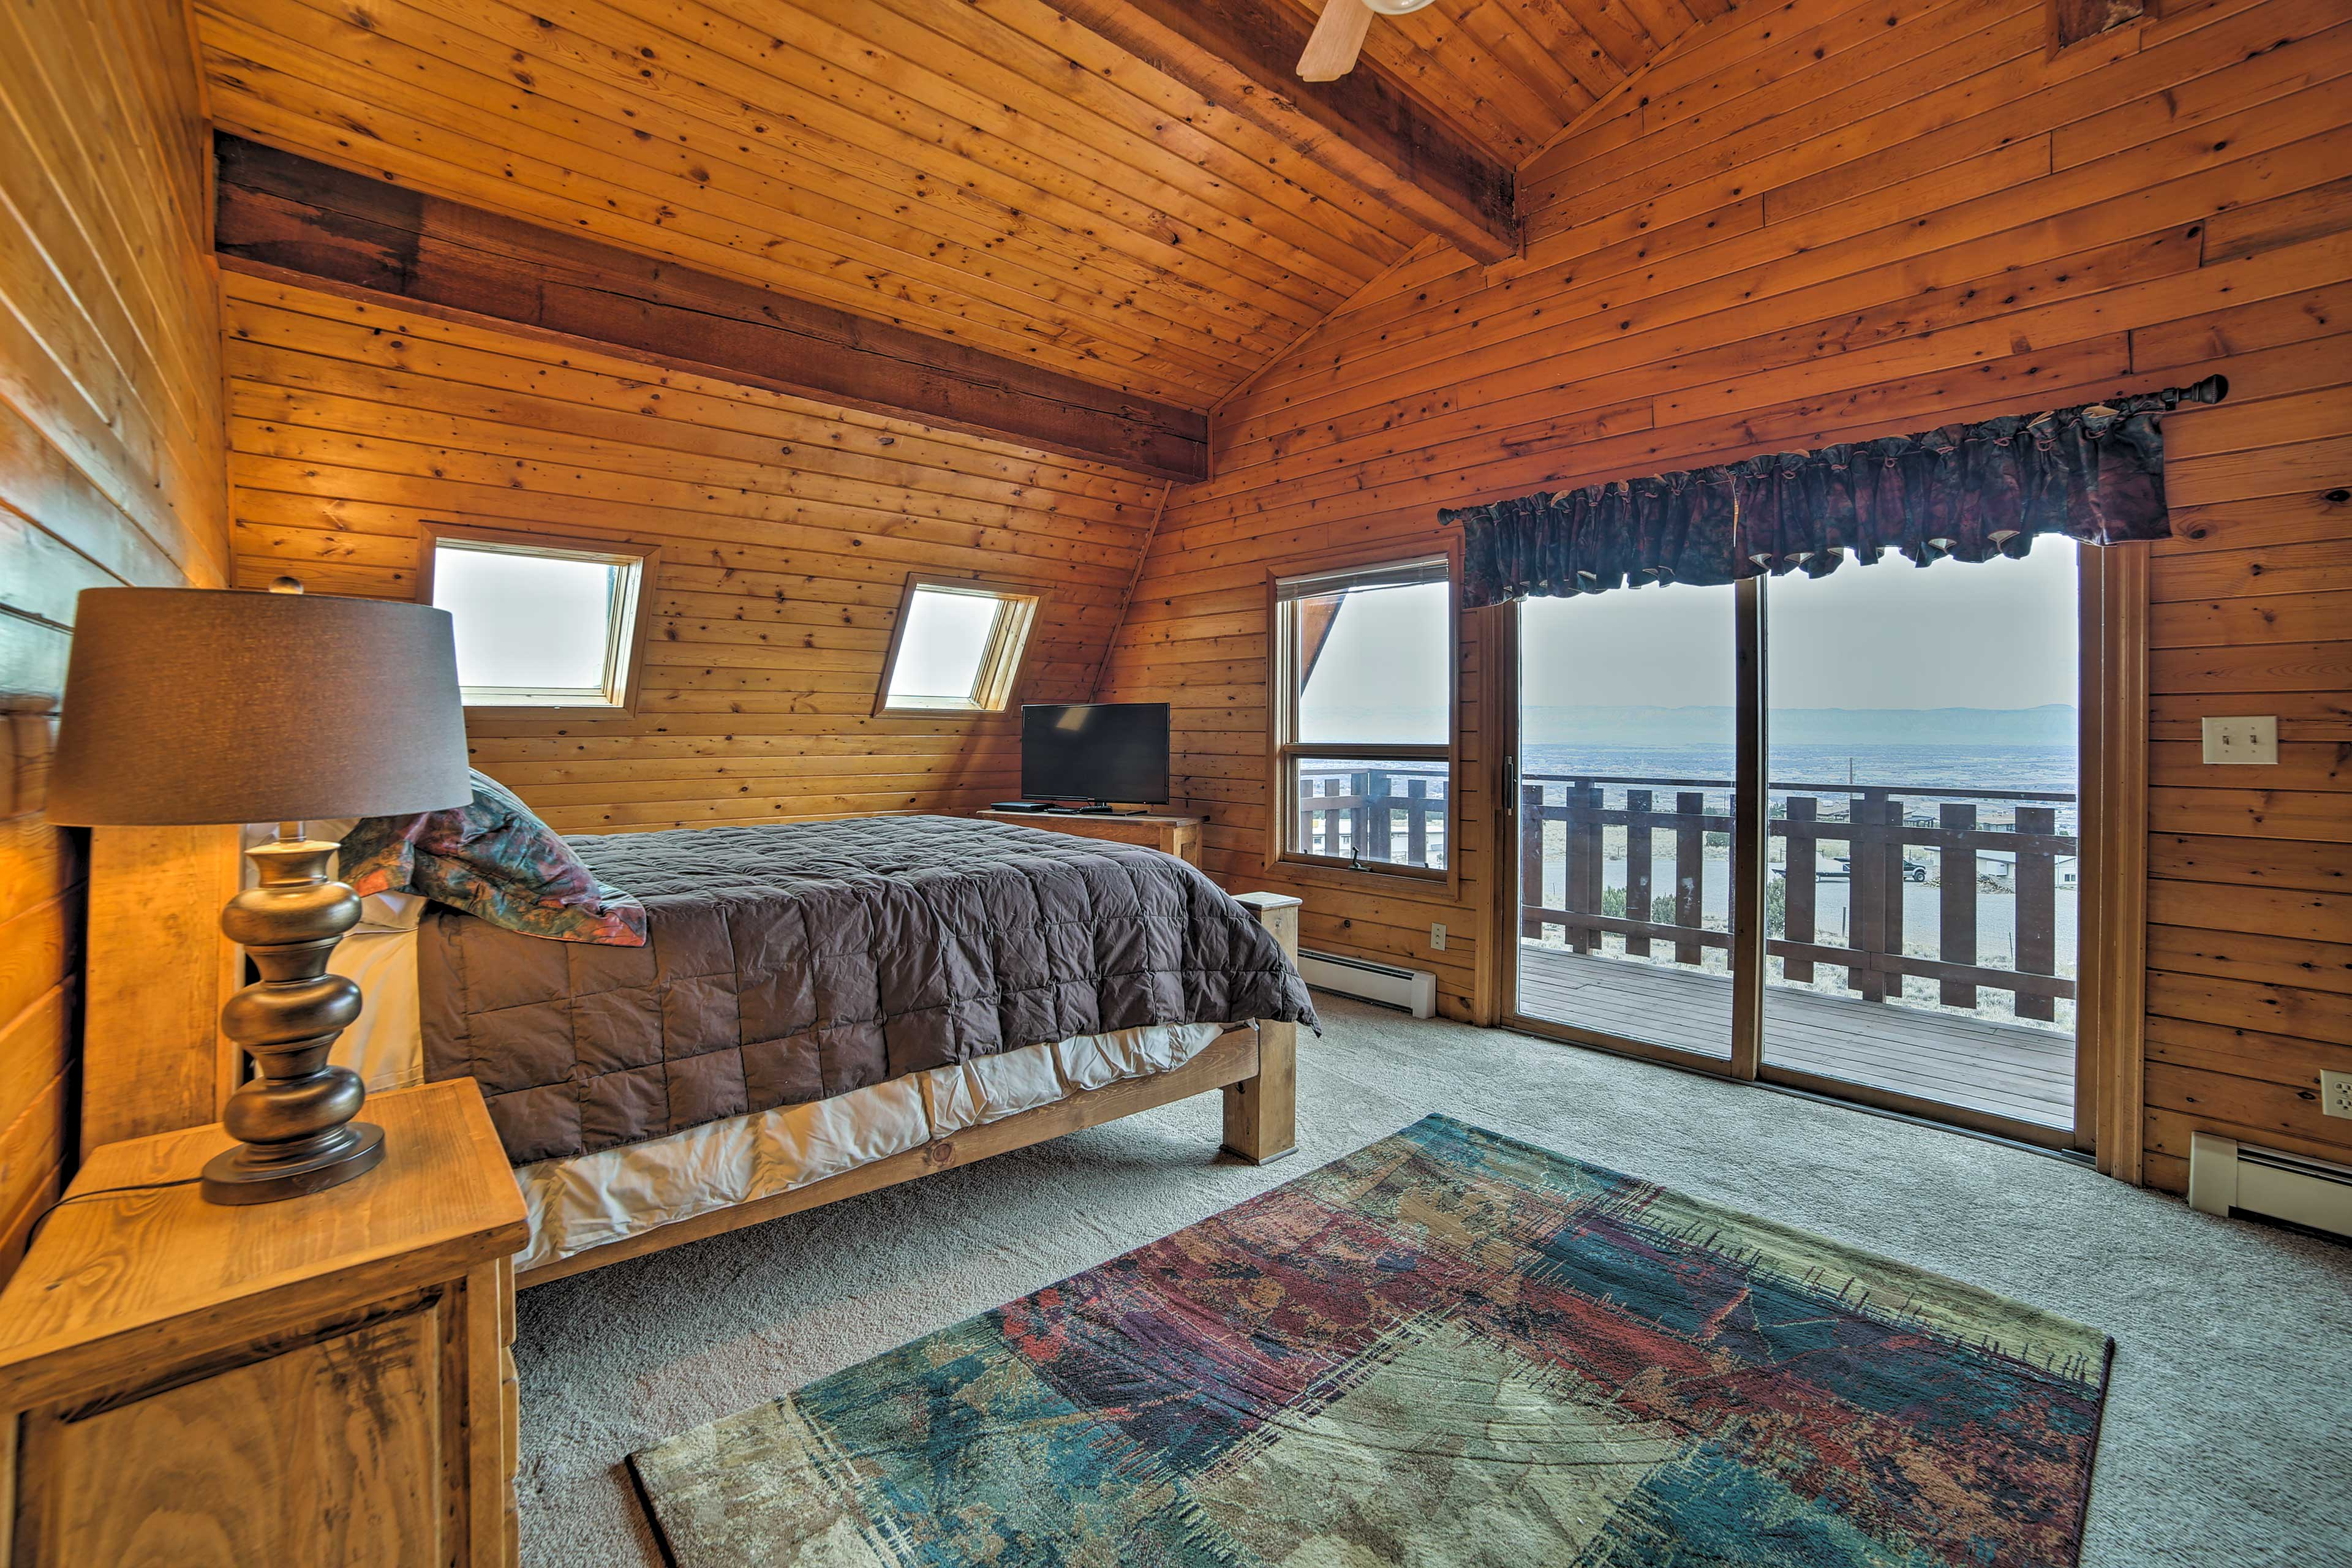 This master bedroom offers vaulted ceilings and access to the second floor deck.